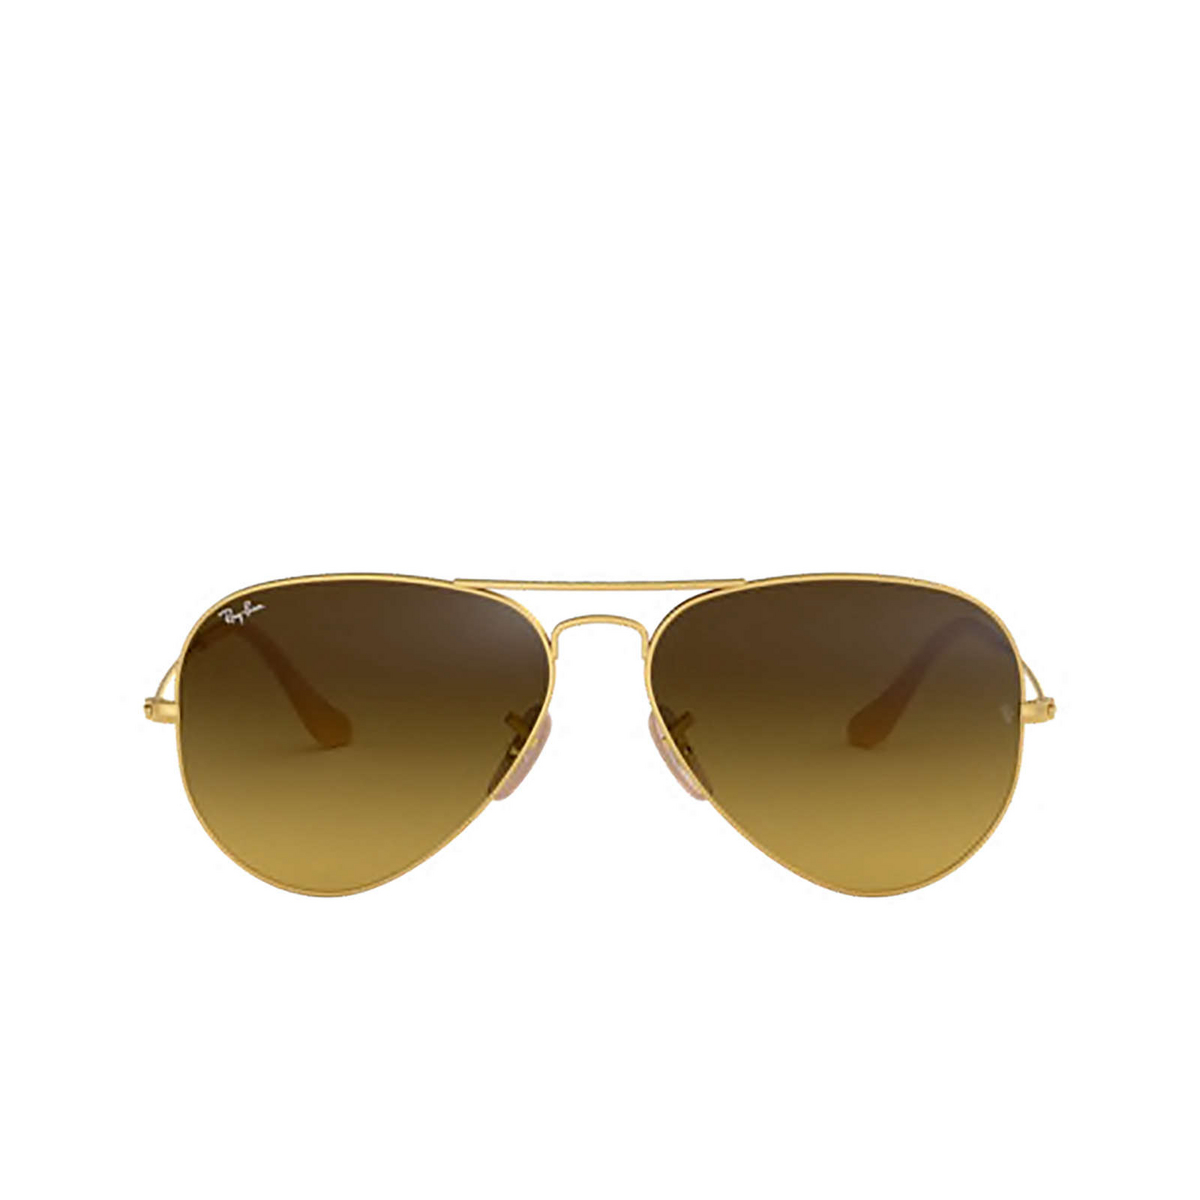 Ray-Ban® Aviator Sunglasses: Aviator Large Metal RB3025 color Matte Arista 112/85 - front view.